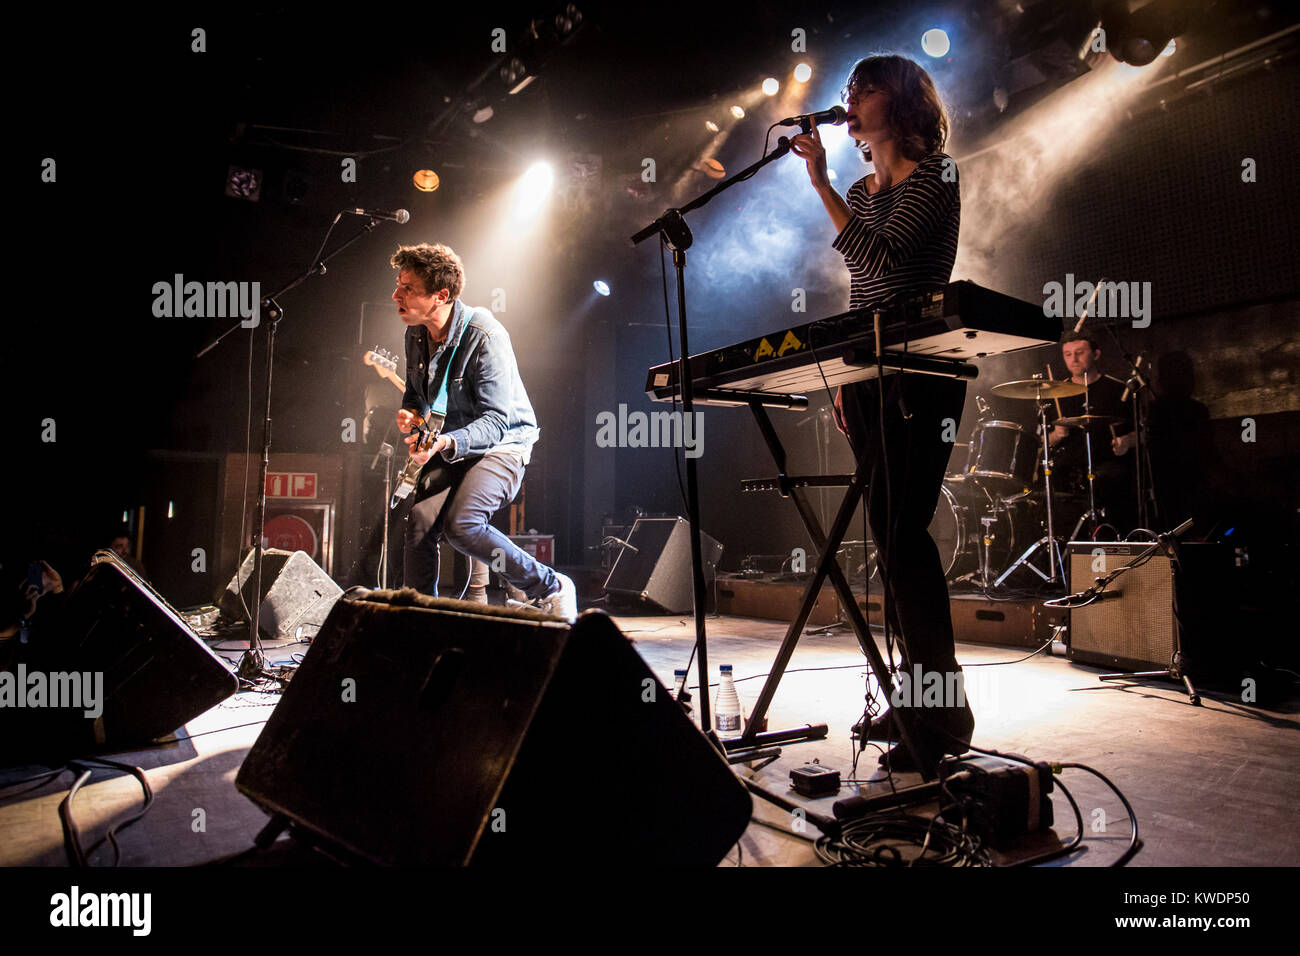 Barcelona, Spain. October 20, 2017. Concert by The Pains of Being Pure at Heart in Sala Bikini. Organized by A Houston - Stock Image